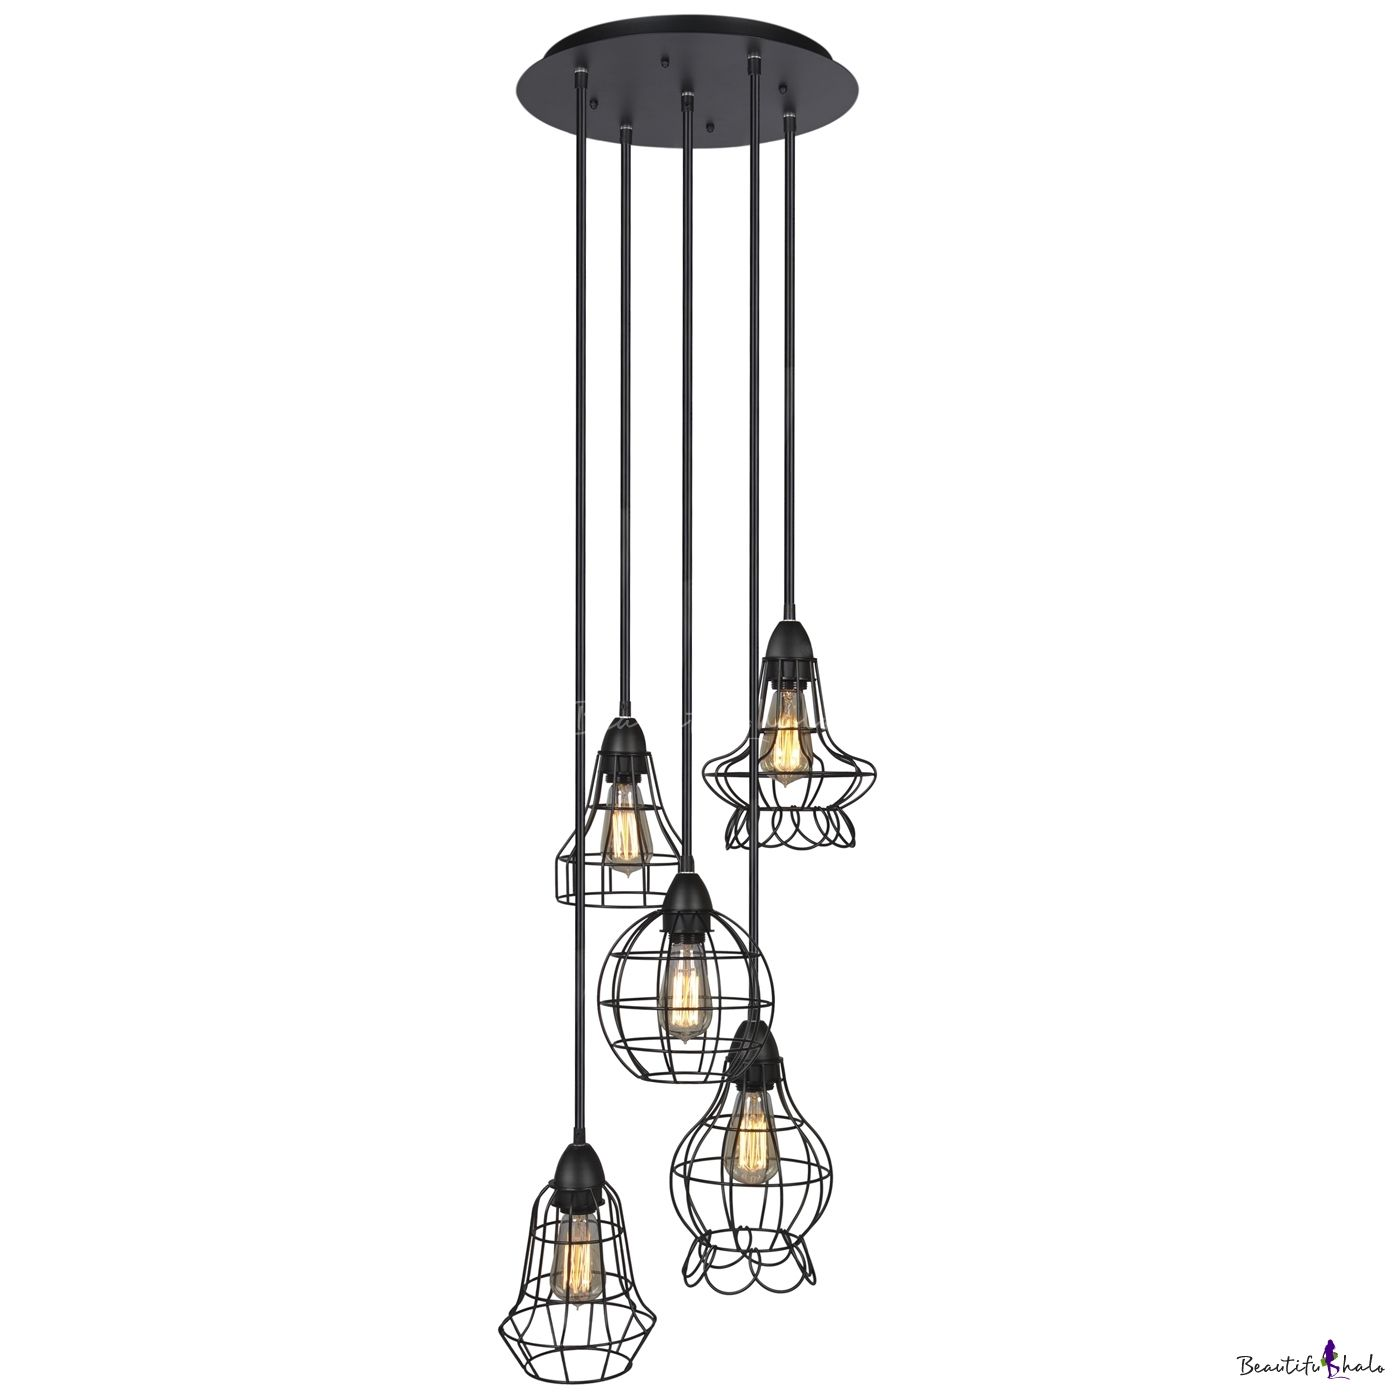 A LOFT Set of Lighting Fixture with Five Iron Cage Bulb Lights - Beautifulhalo.com